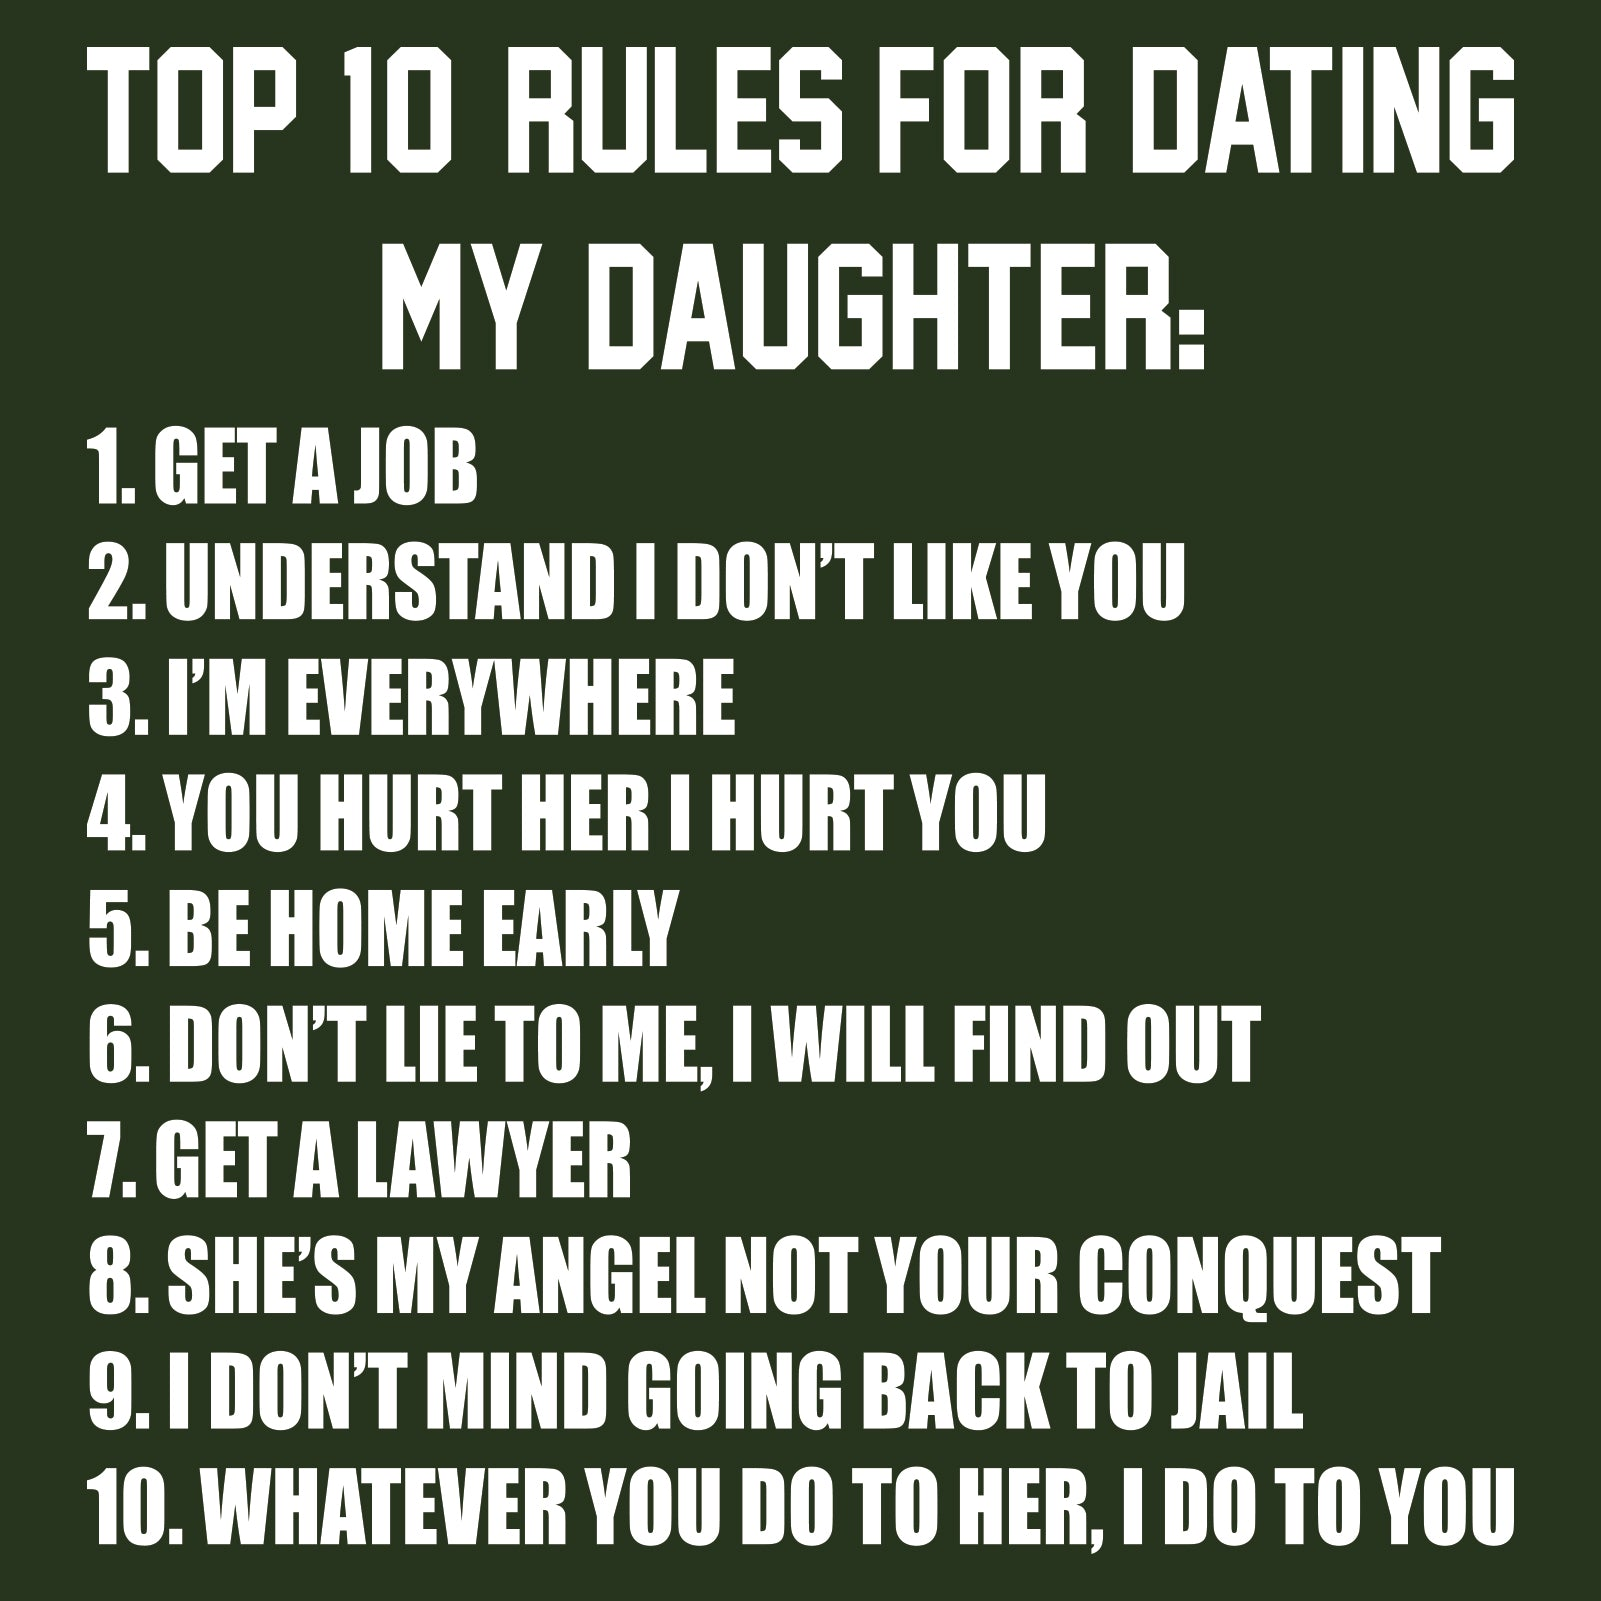 Ten rule for dating my daughter